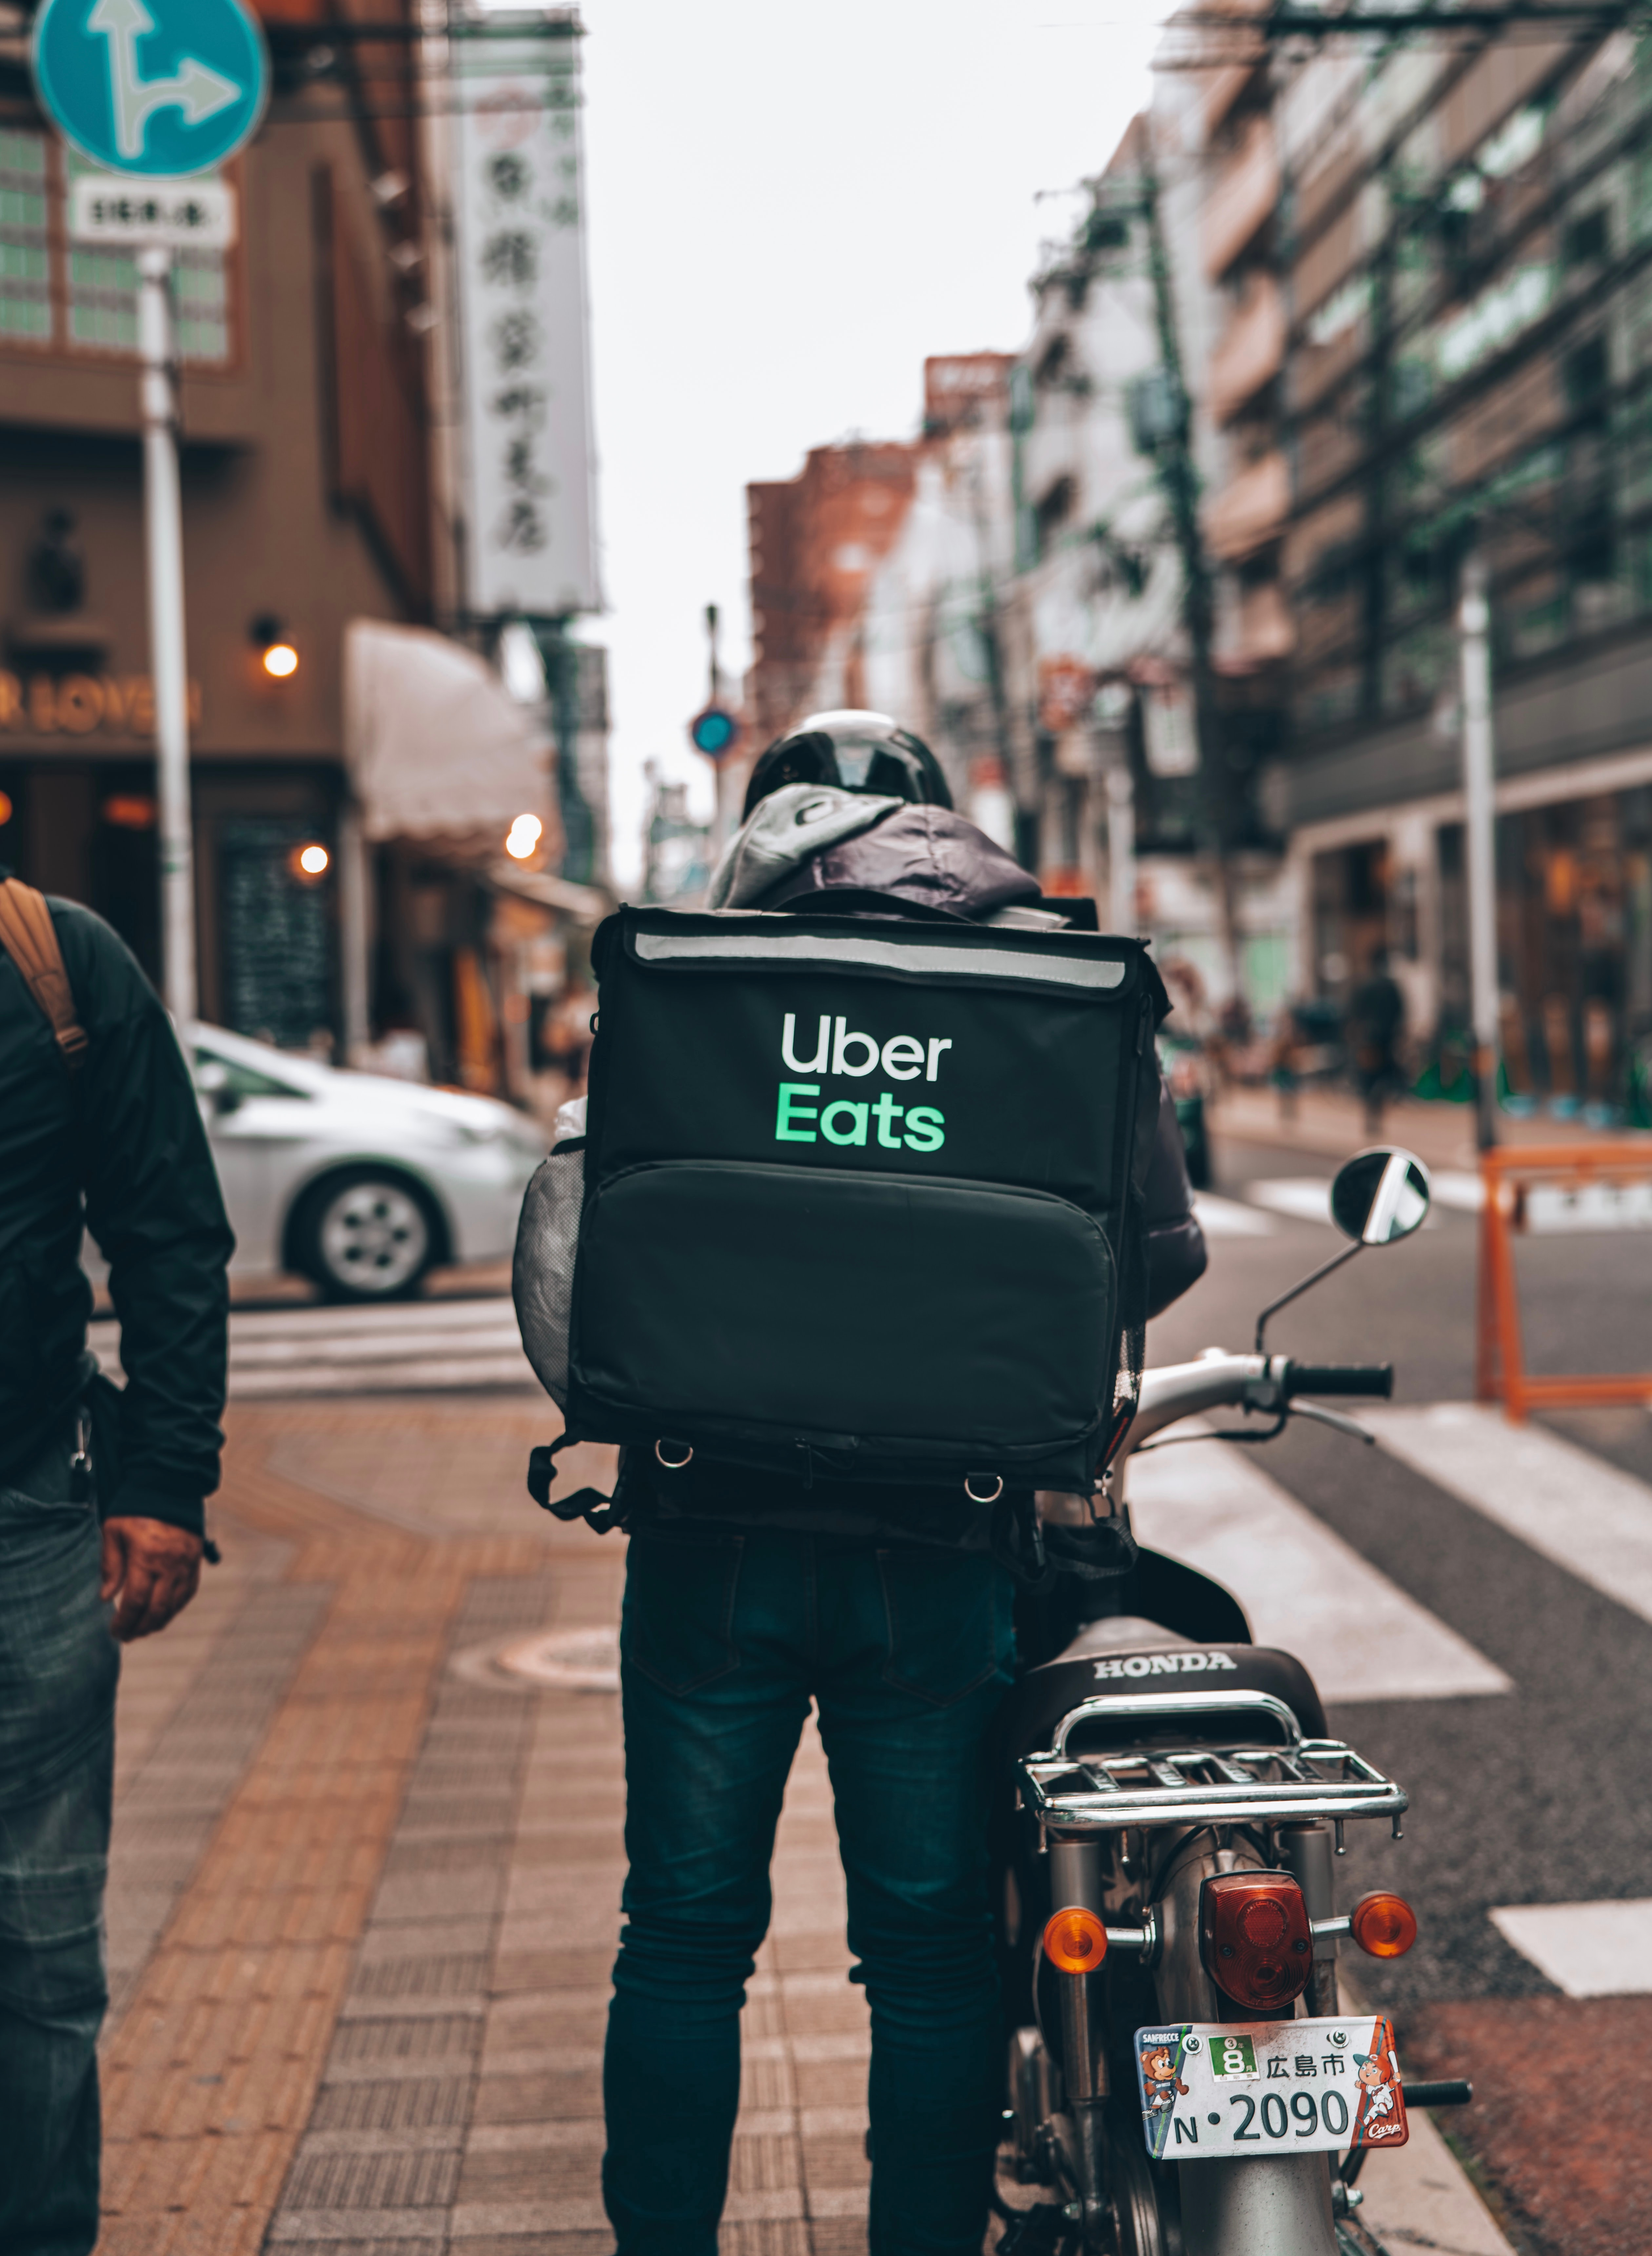 Image of a bicycle Uber Eats delivery person on a busy street